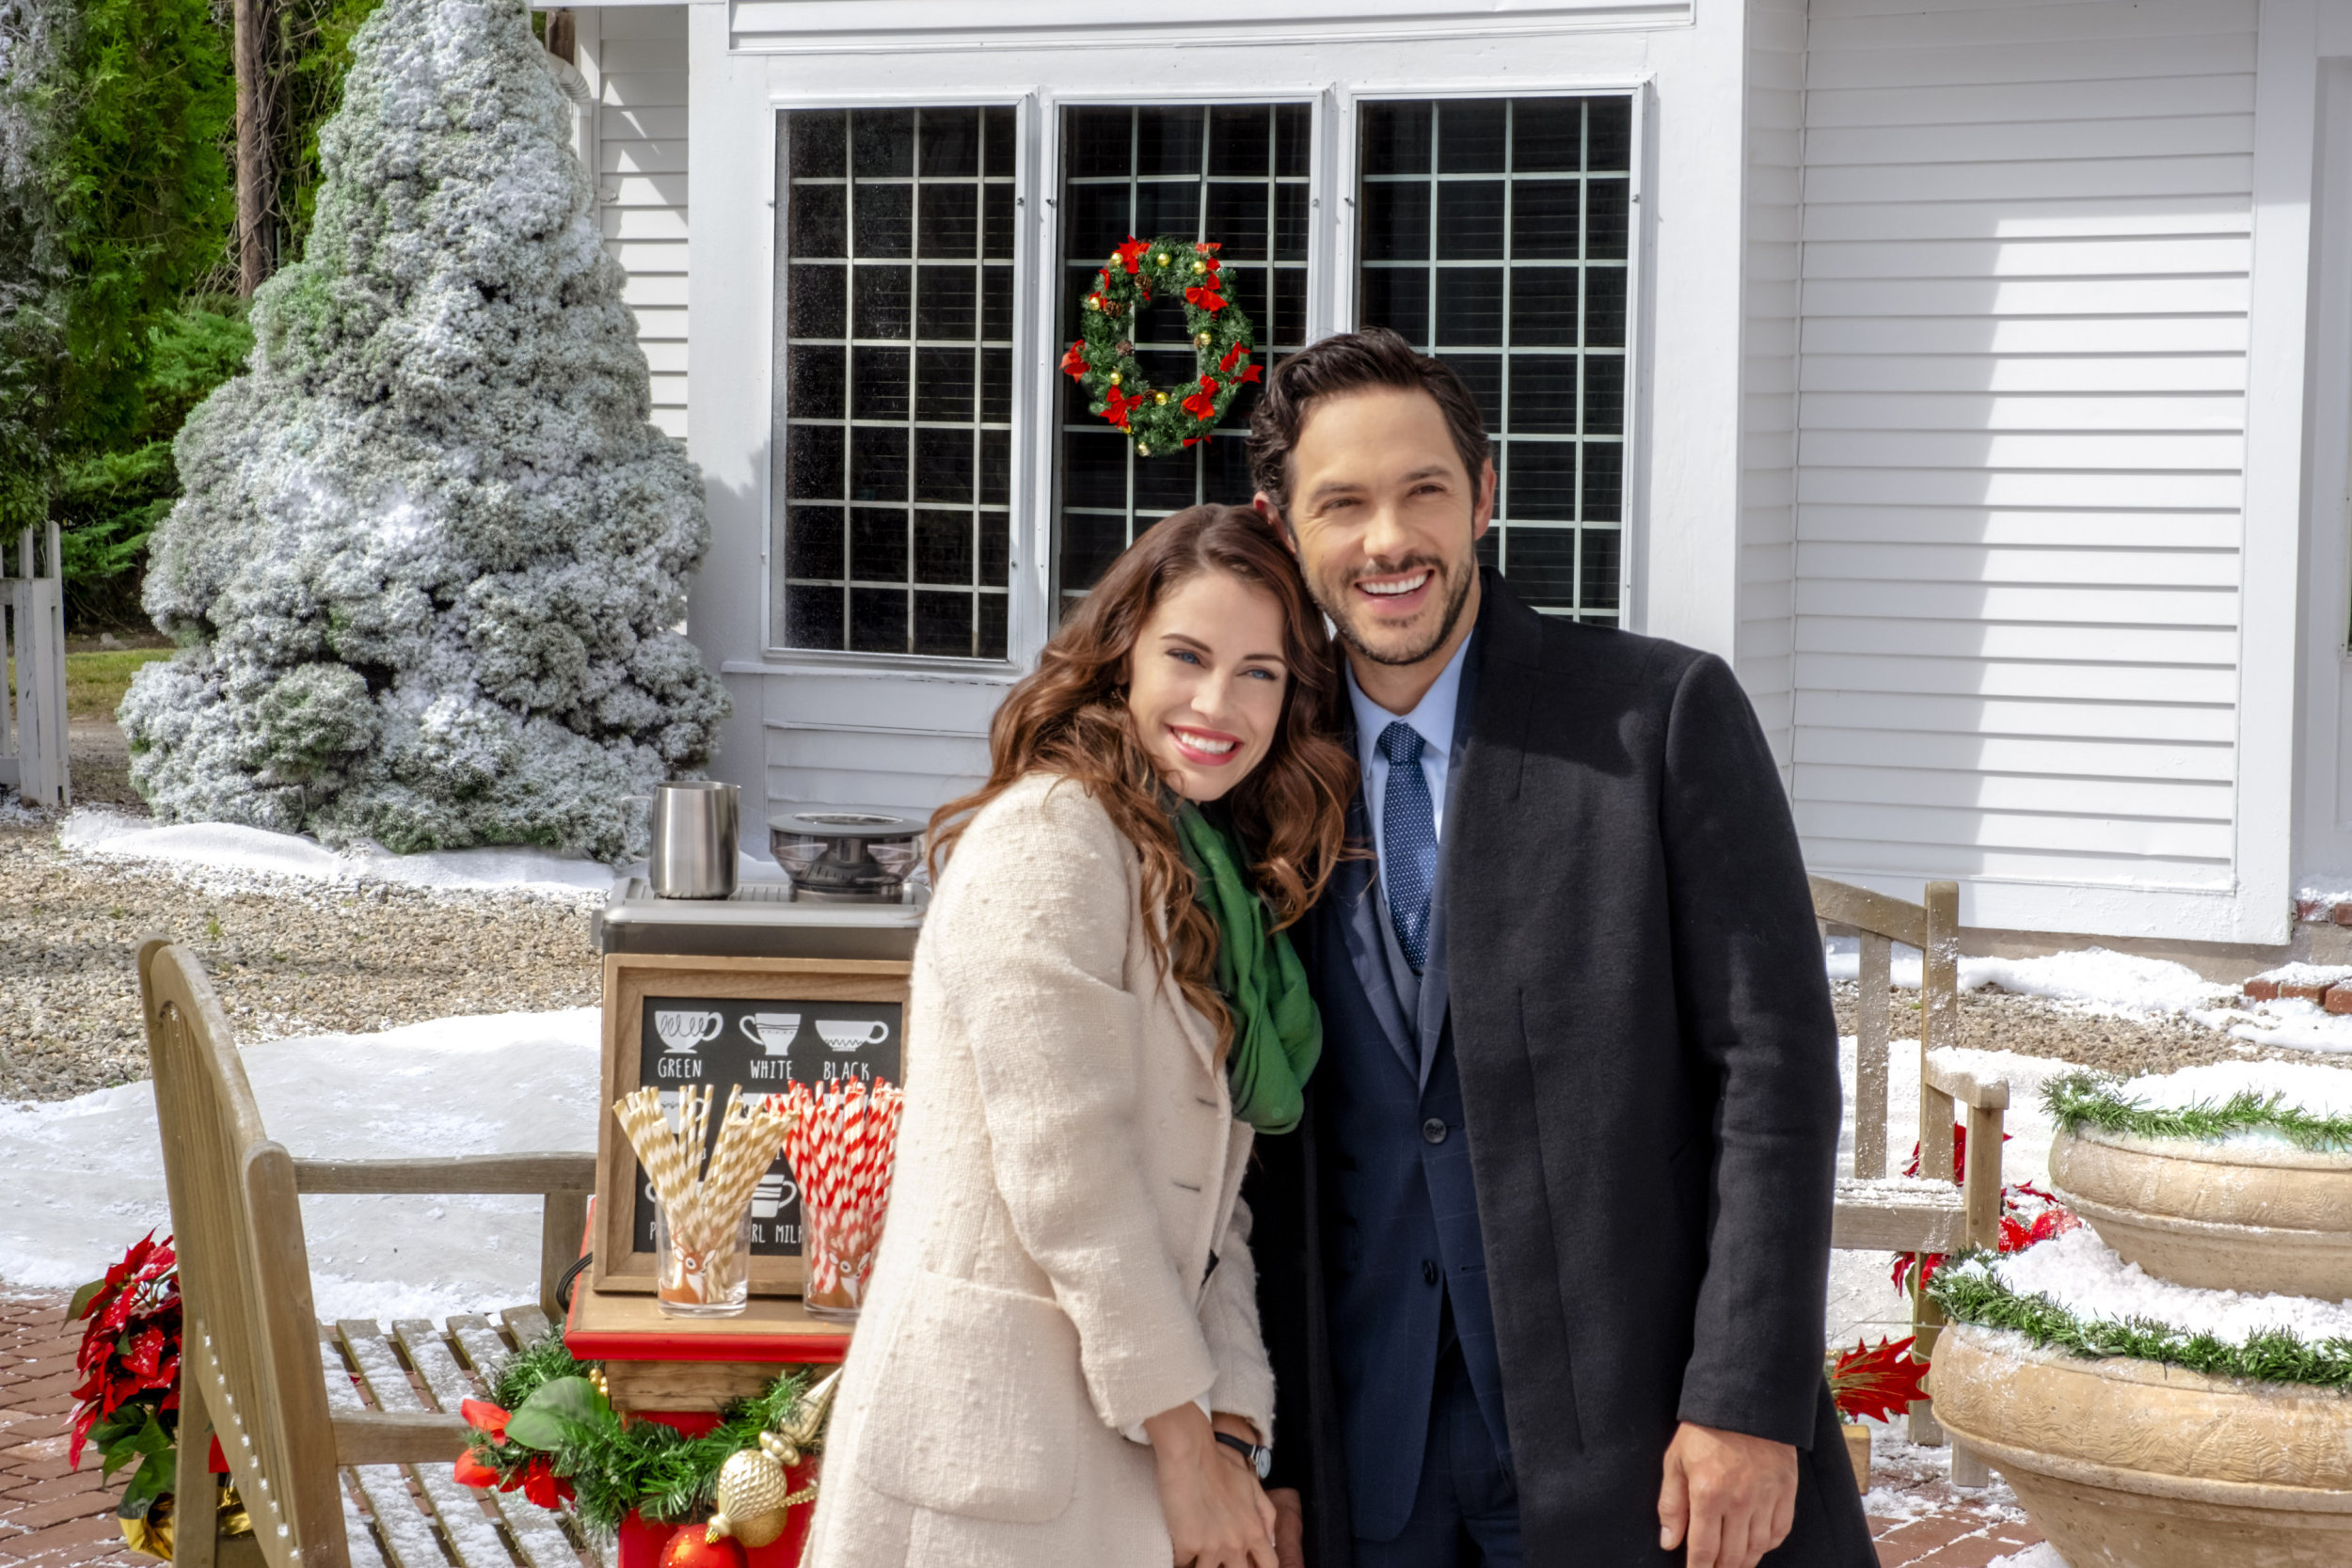 Christmas At Pemberley Manor Cast.Christmas At Pemberley Manor Cast Hallmark Channel